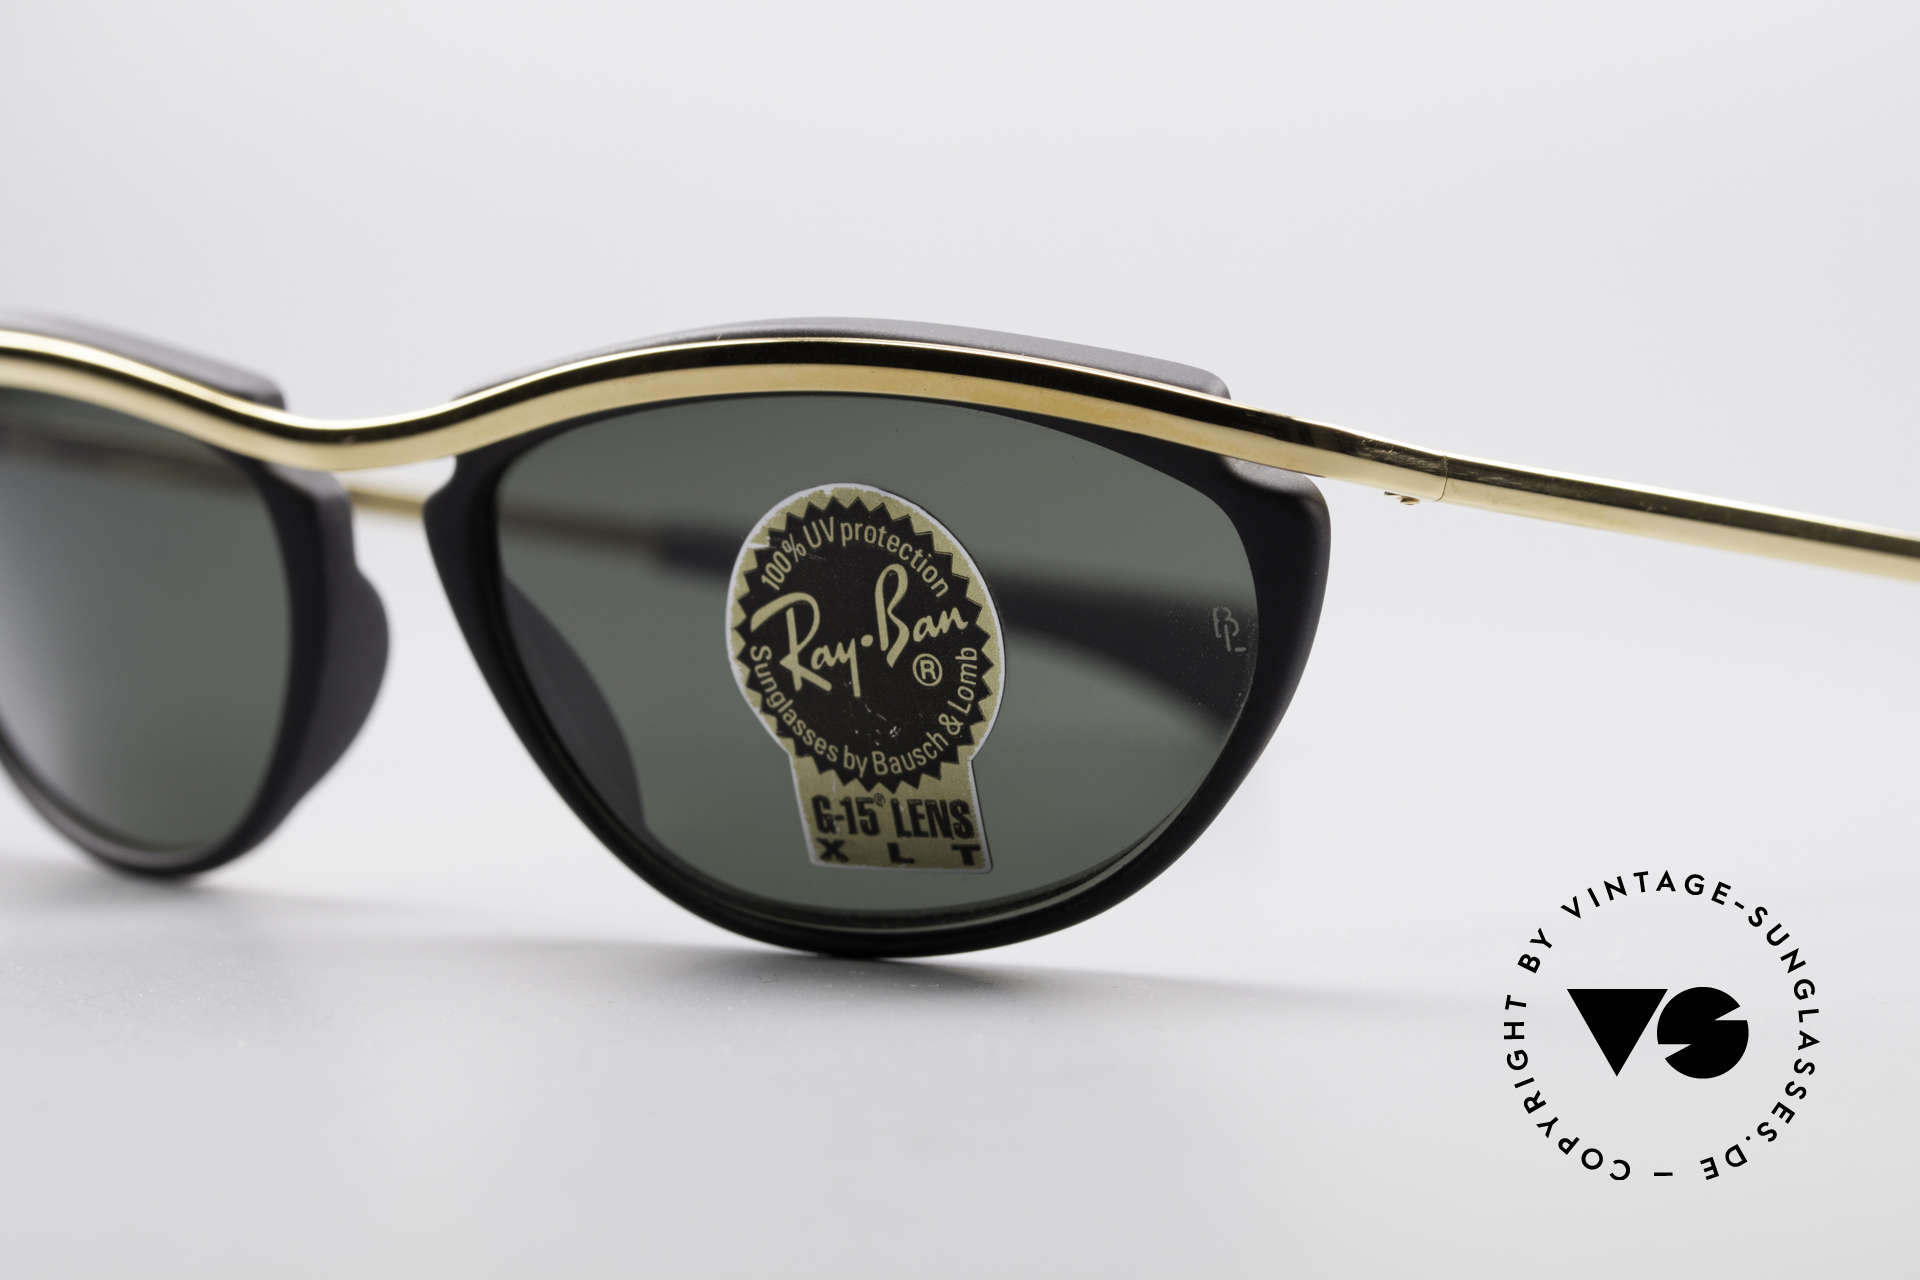 Ray Ban Olympian IV Authentic 90's B&L USA Shades, unworn (like all our old sunglasses by RAY-BAN), Made for Men and Women